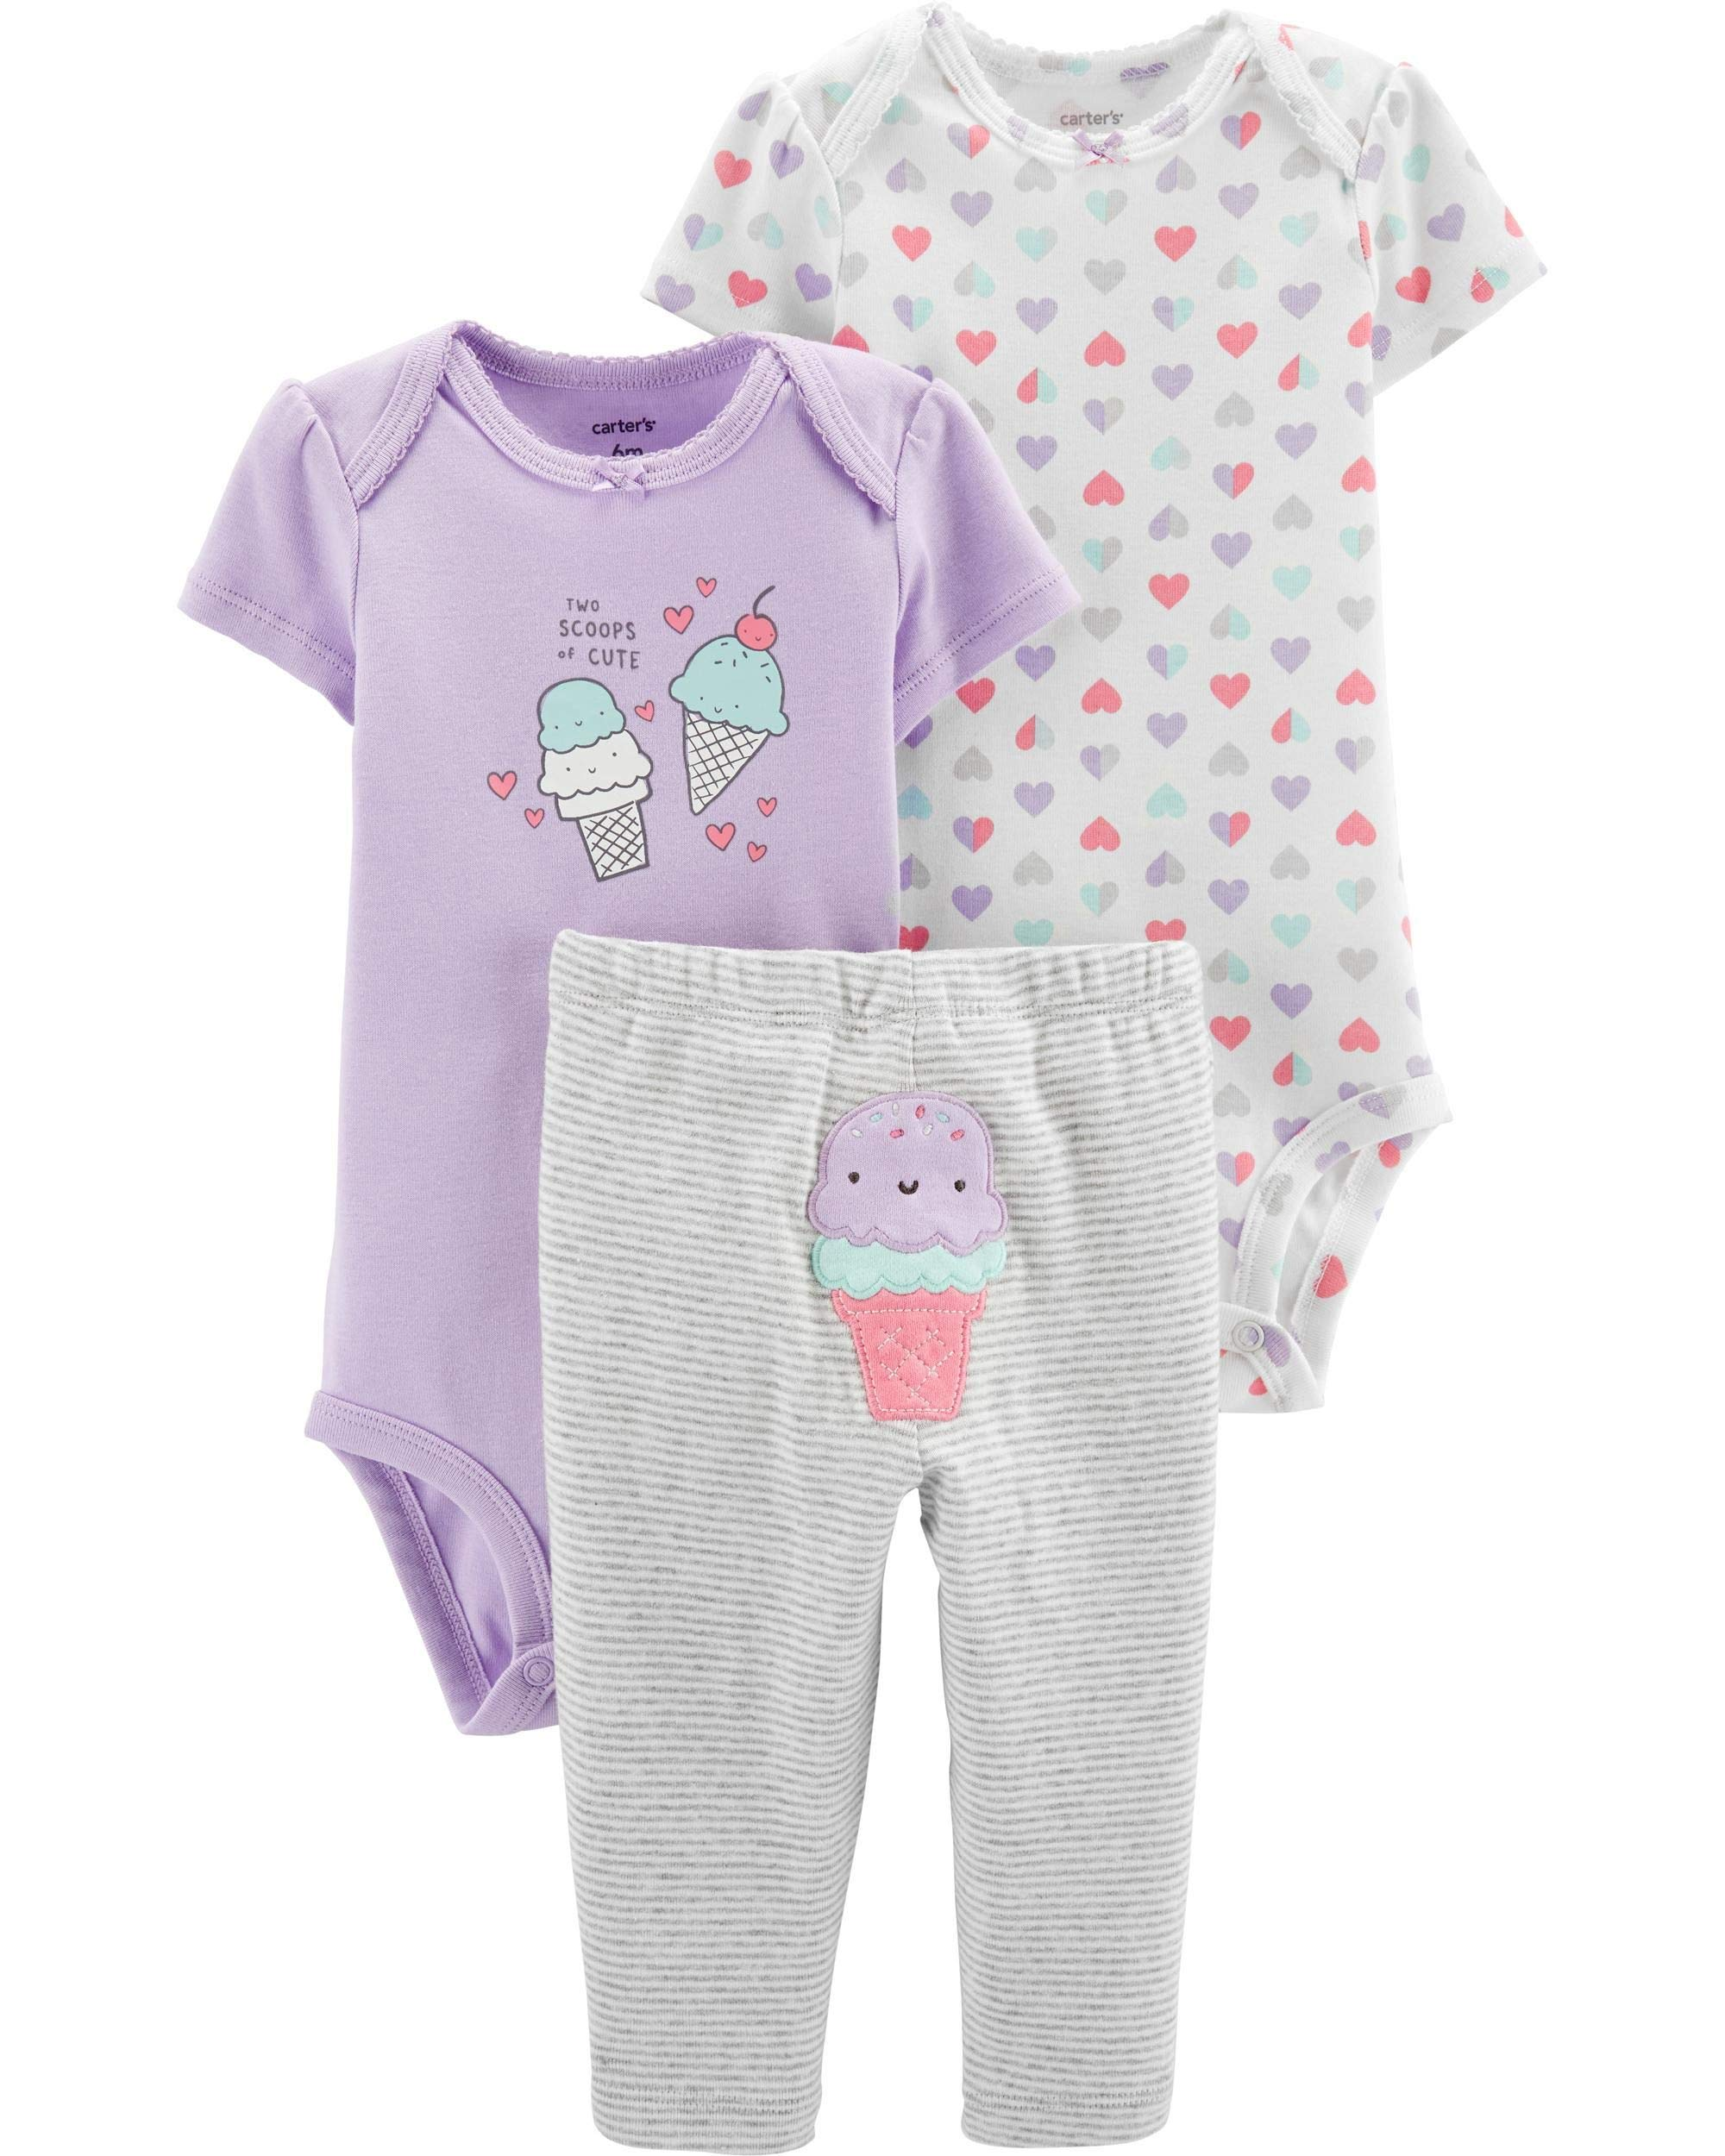 ad8c88865 Carter's Baby Girls Take Me Away 3-Piece Little Character Set product image